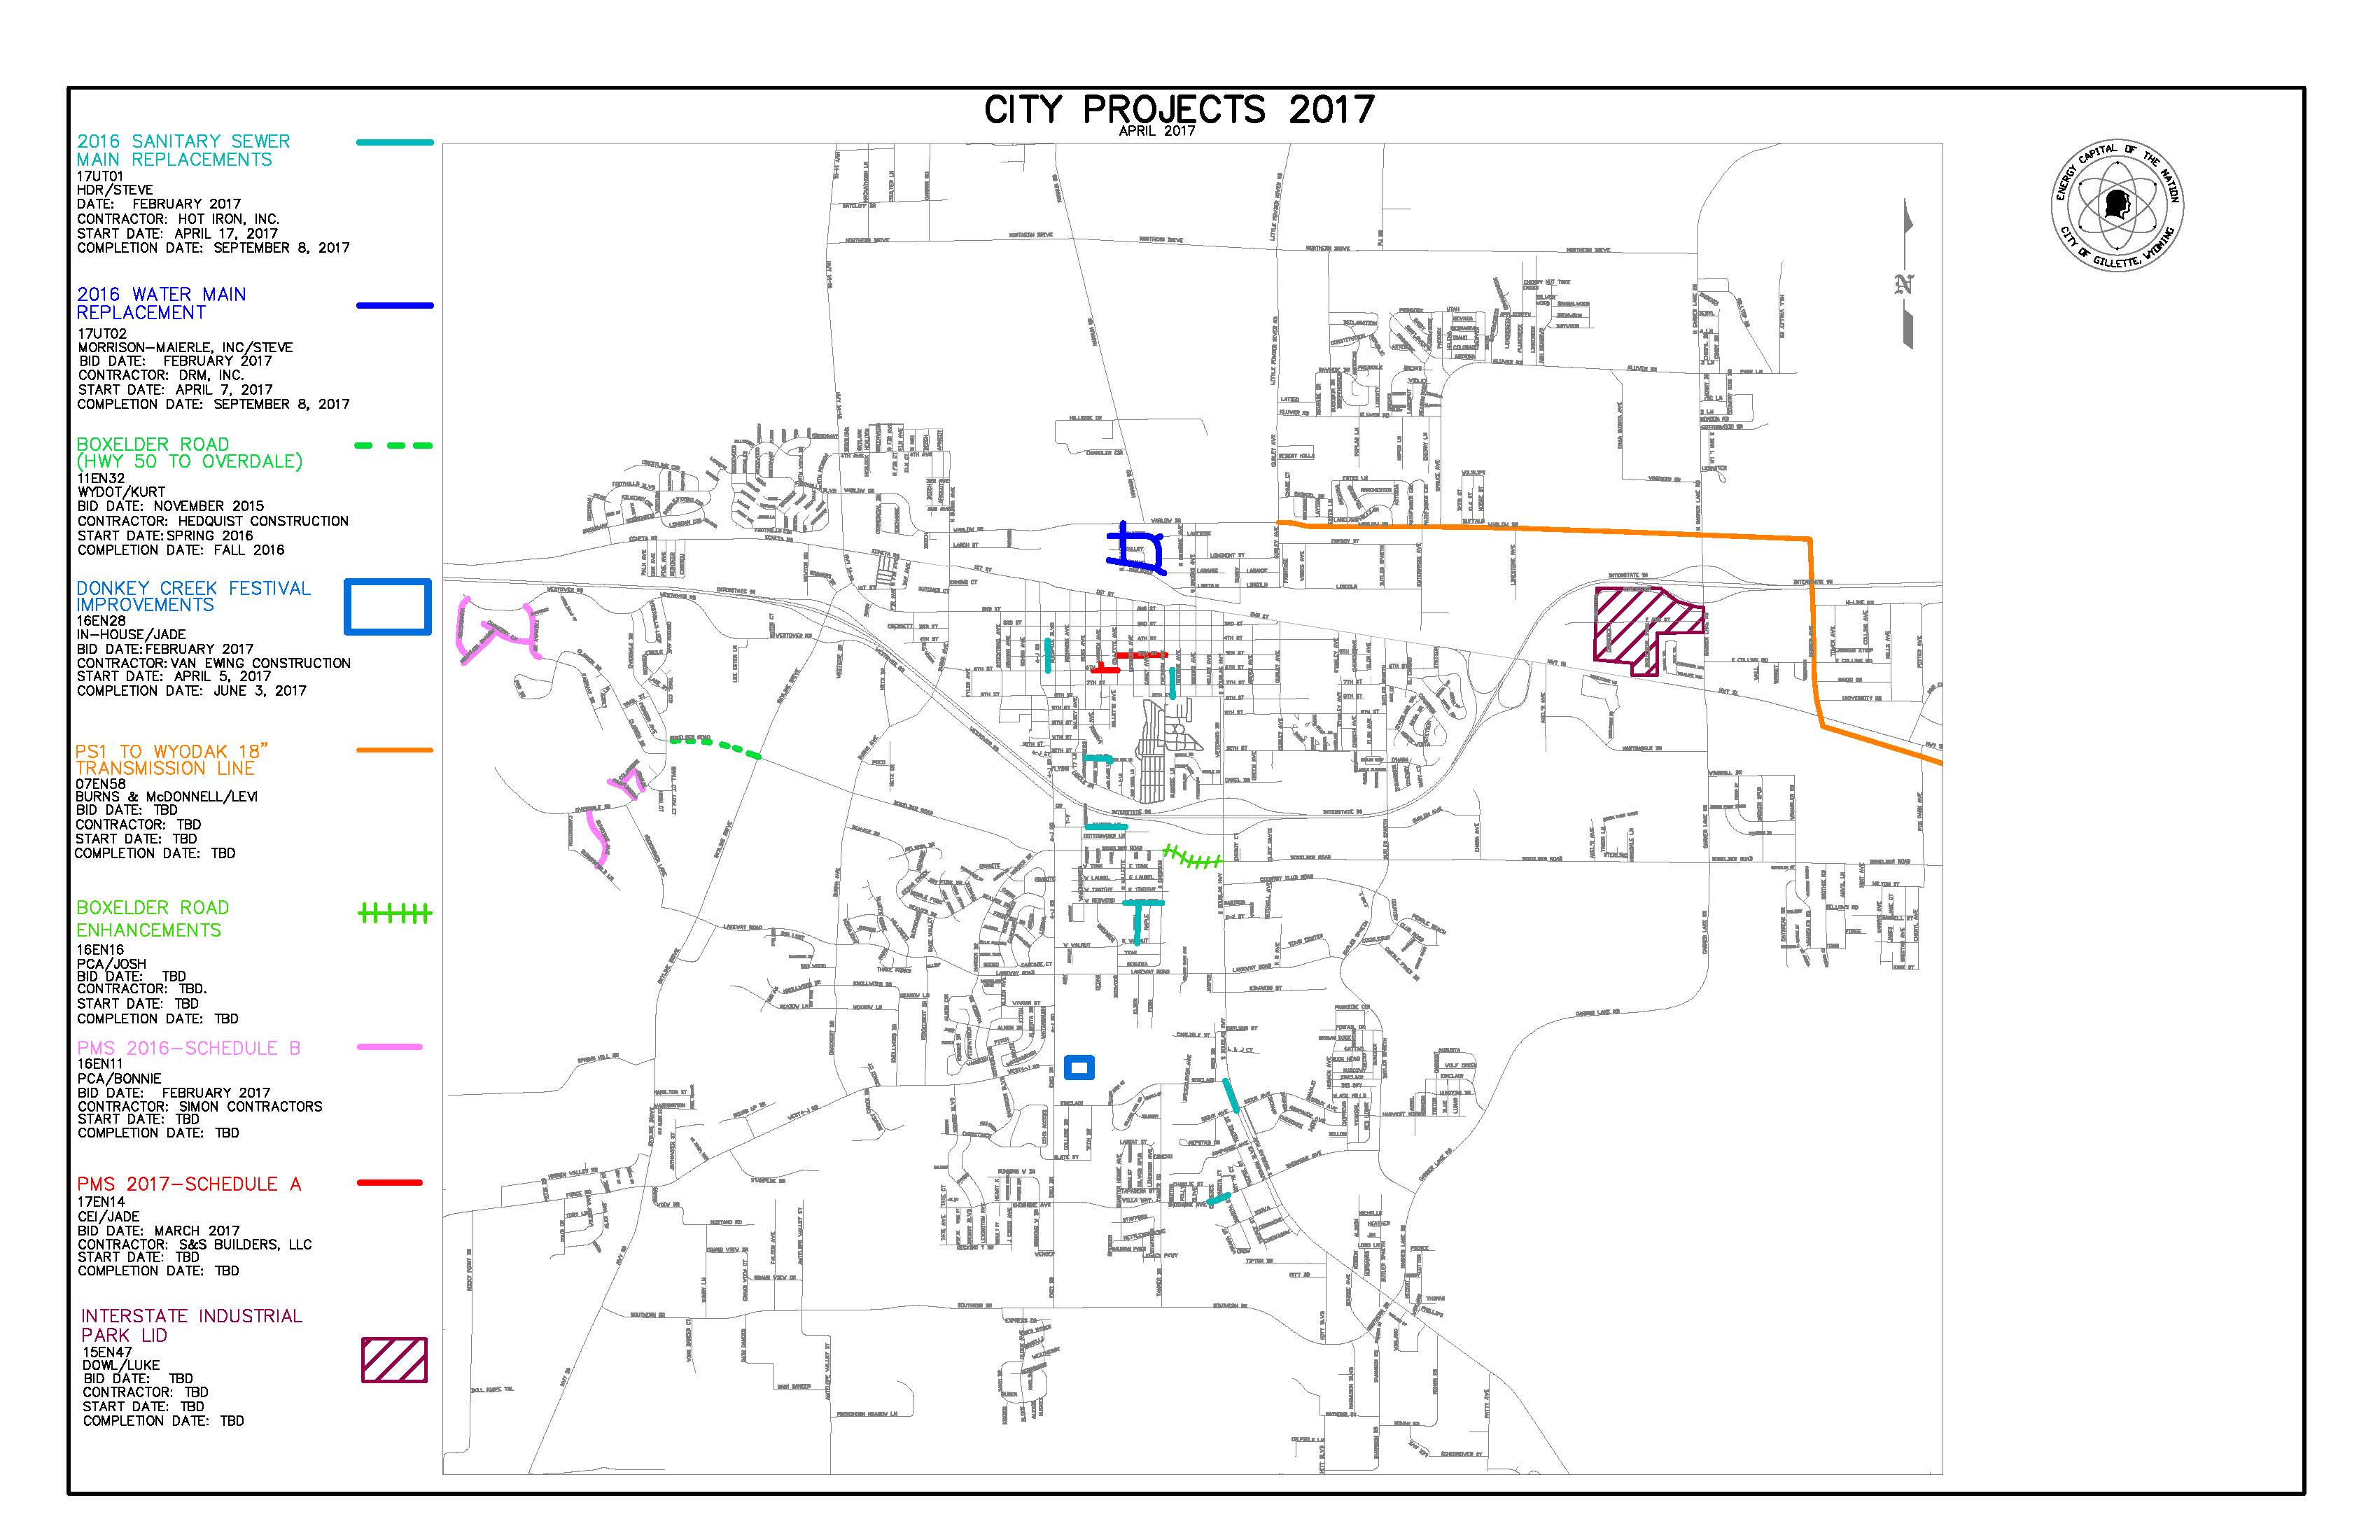 2017 CITY PROJECT MAP